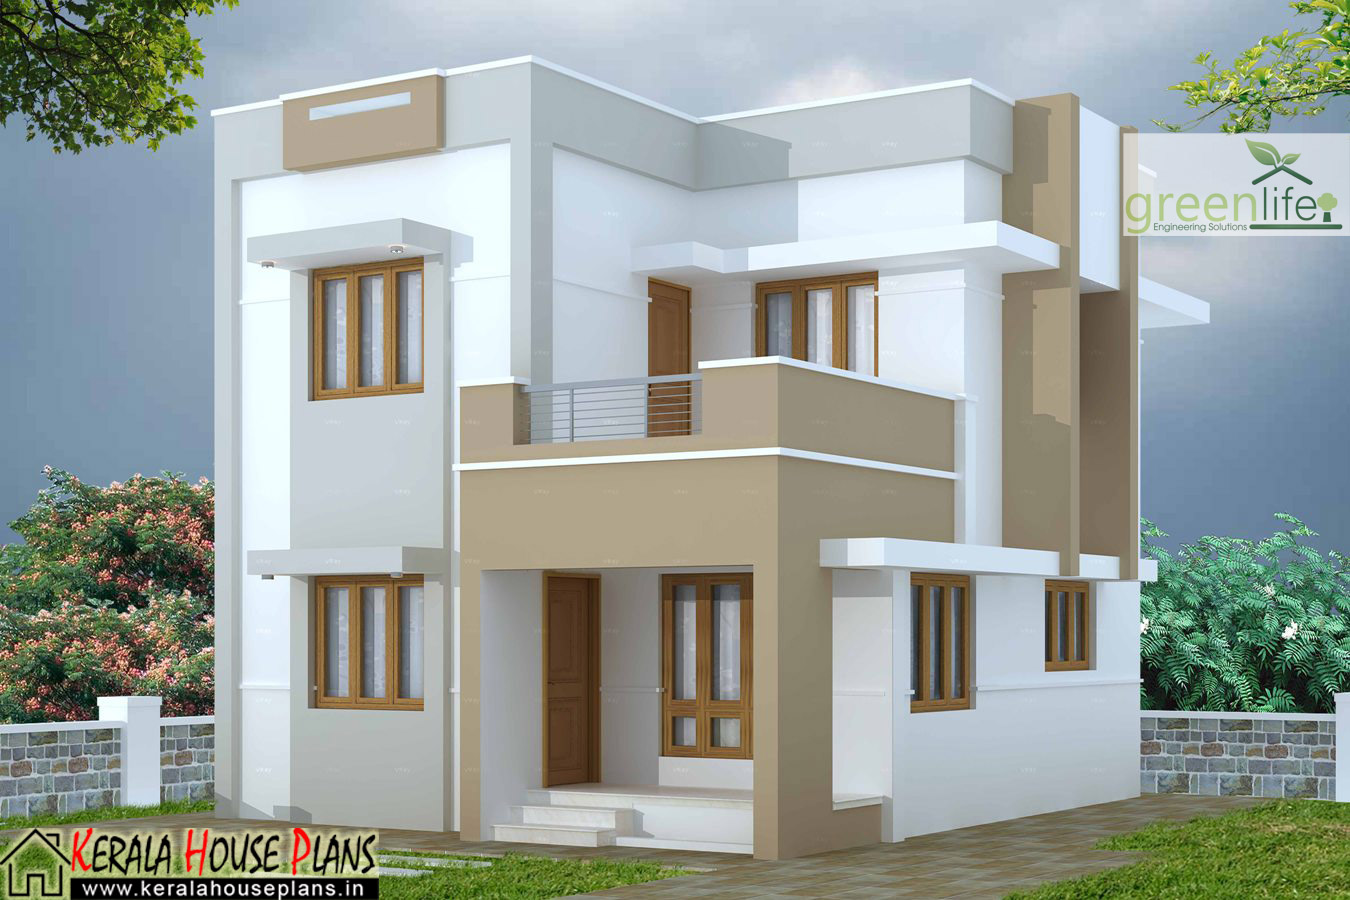 1280 sqft 3 bhk house design 3 cent plot